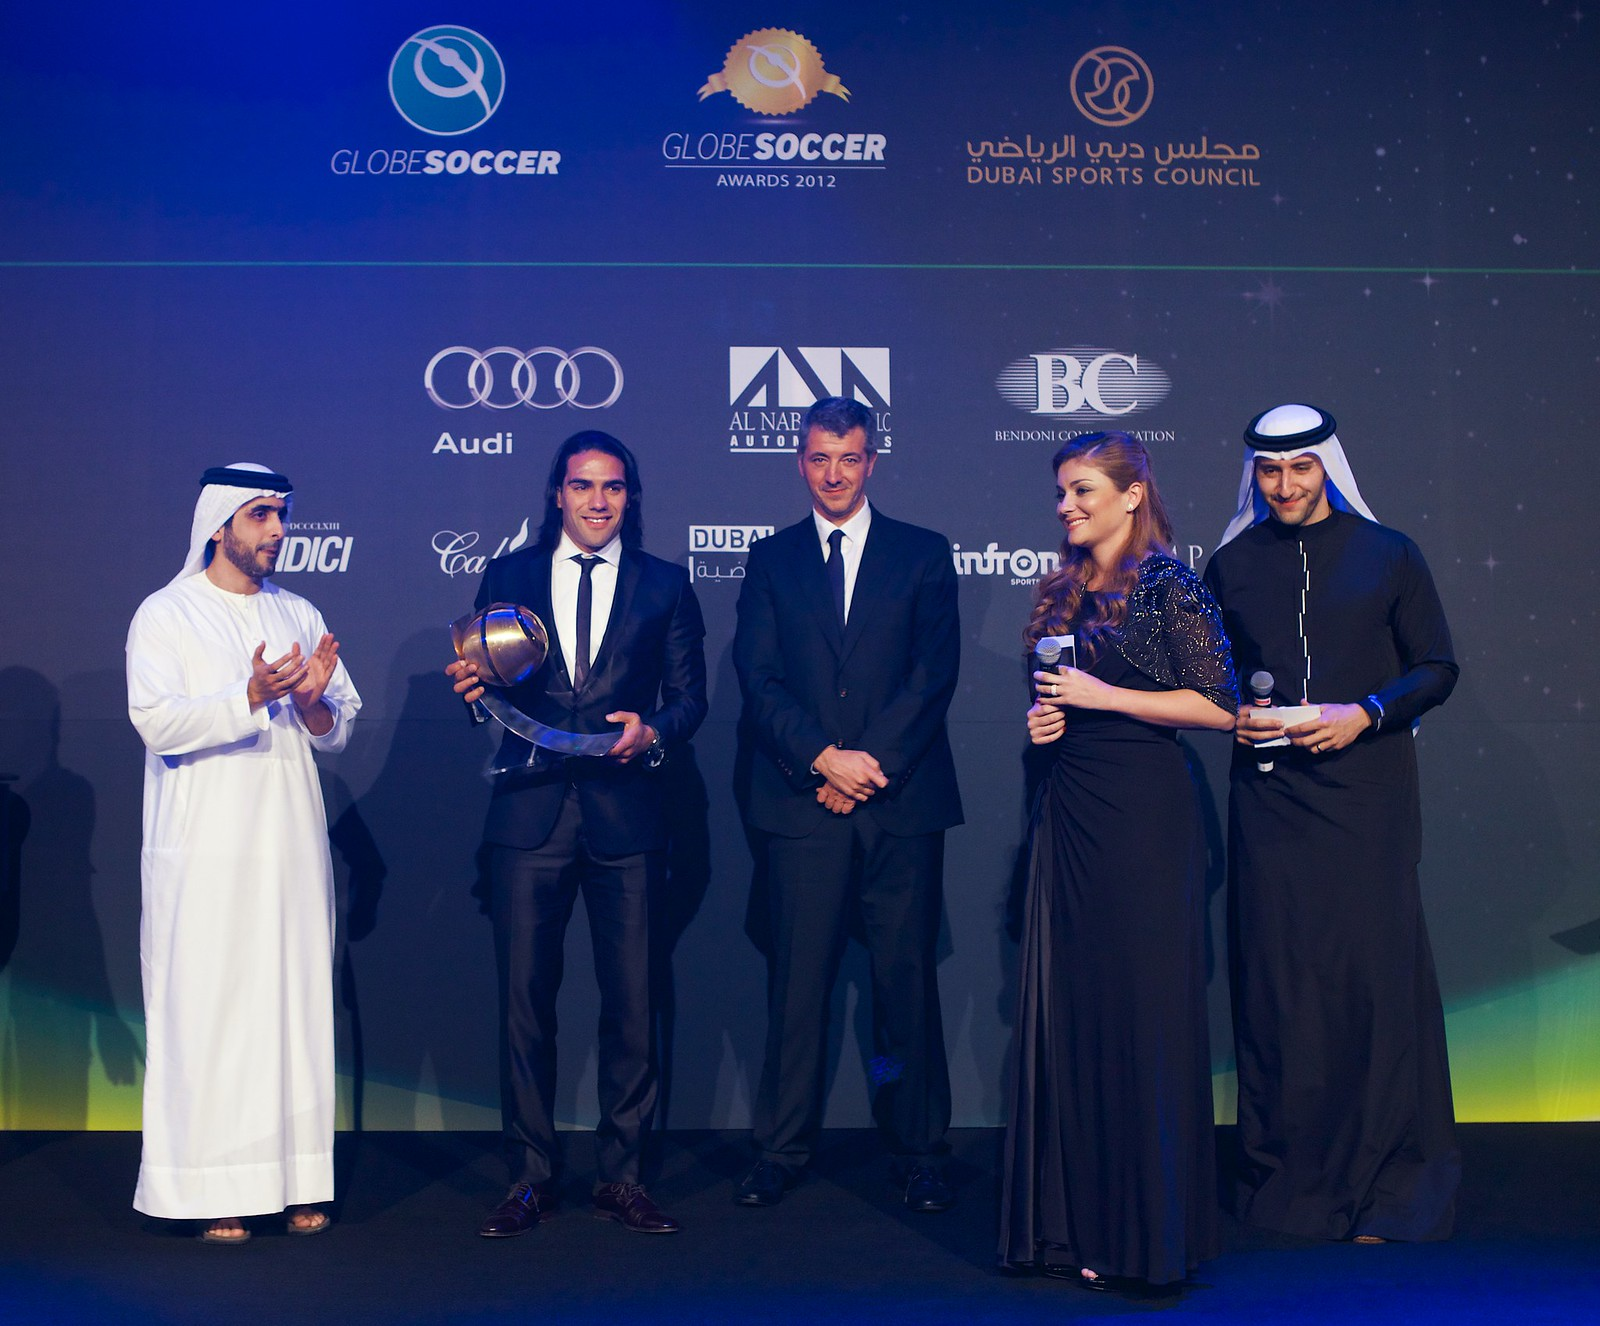 Radamel Falcao awarded by Sheikh Mohamed Al Maktoum